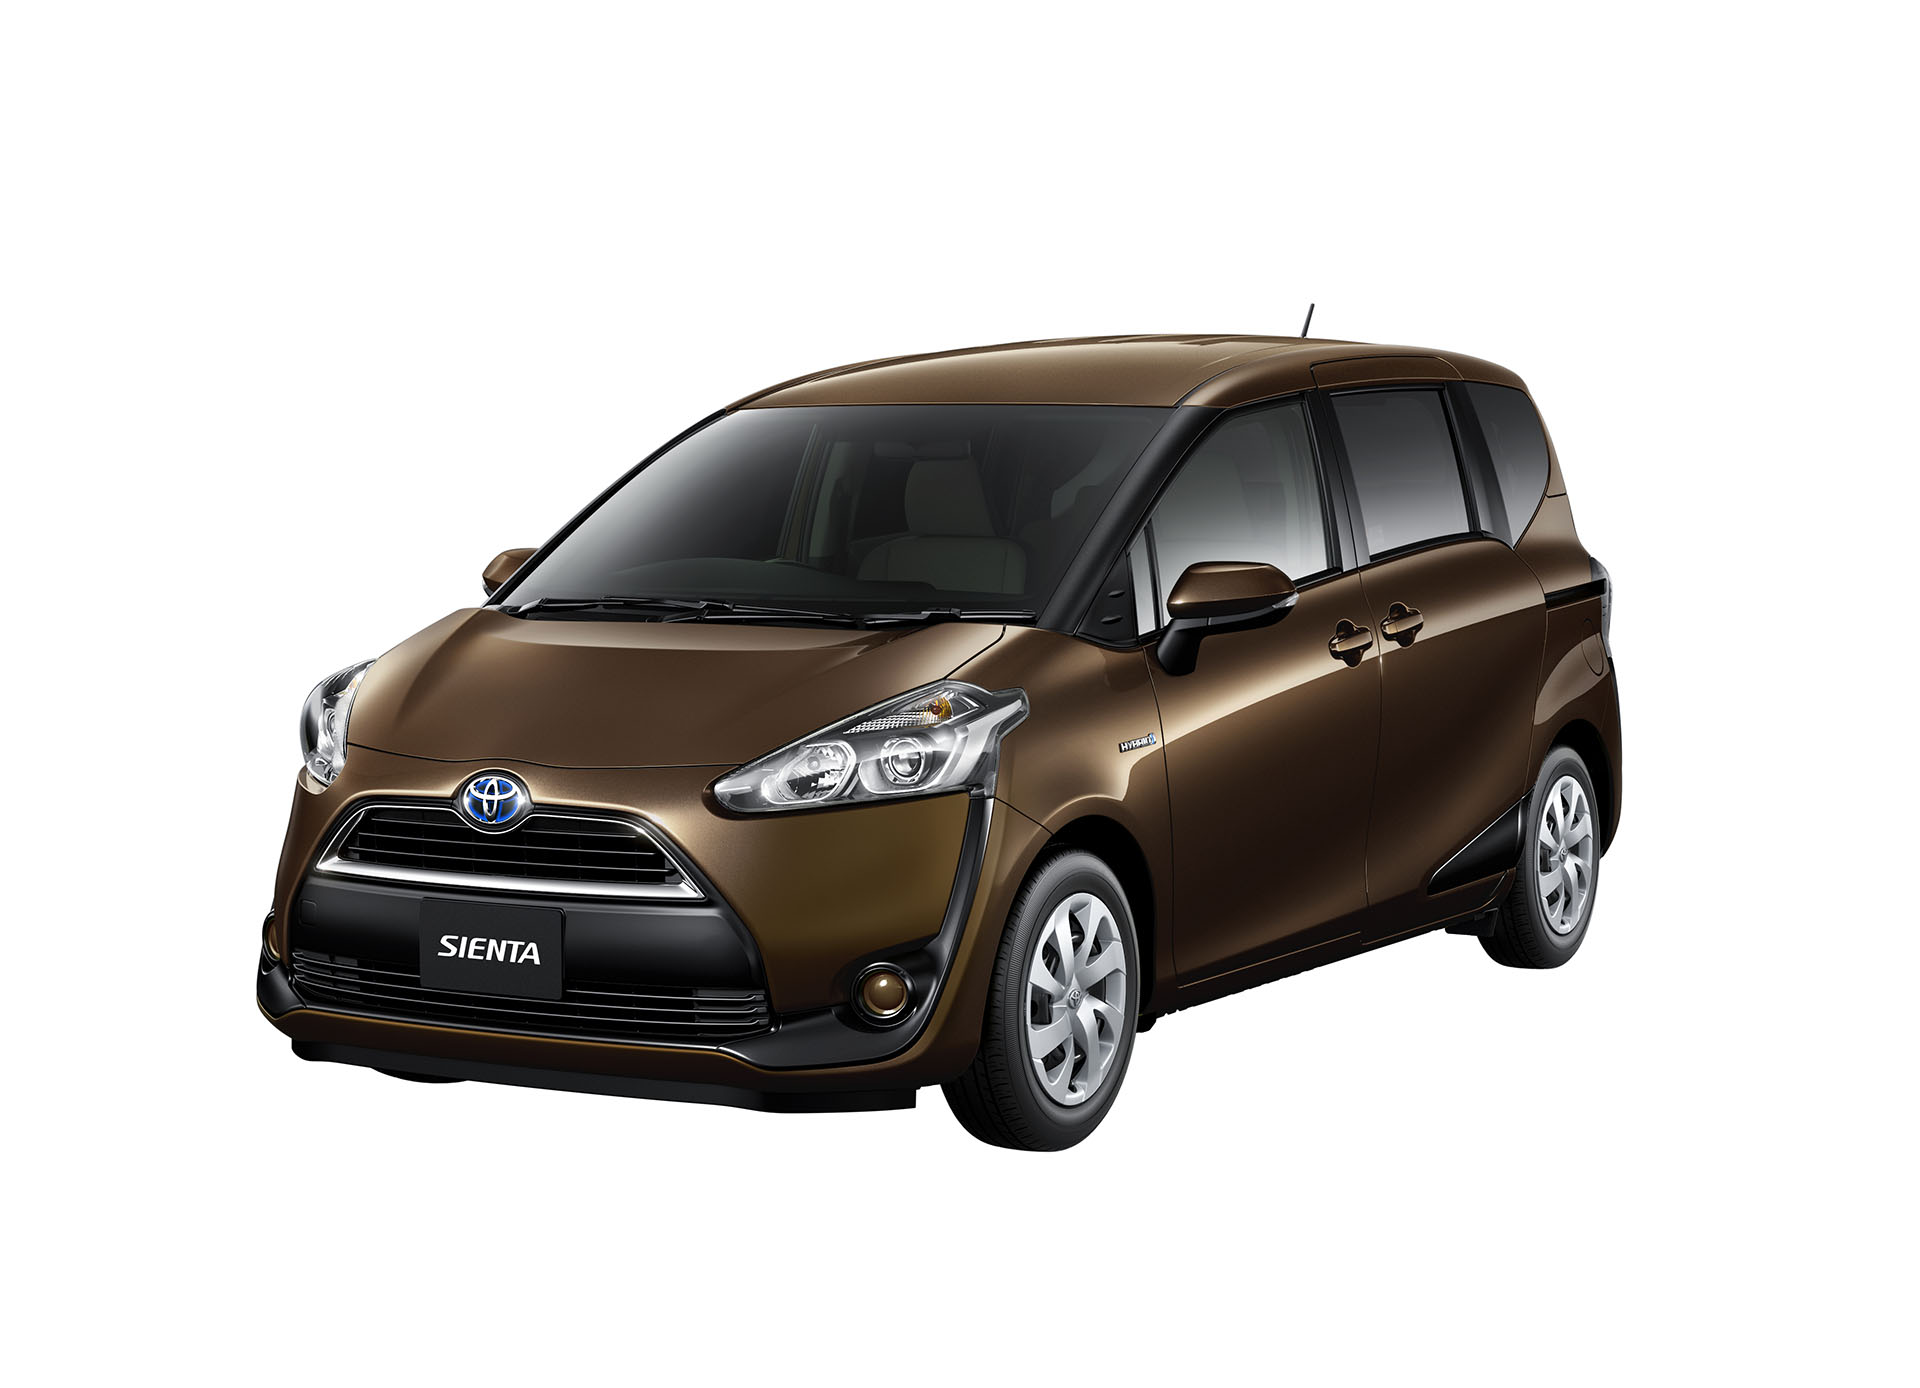 2016 Toyota Sienta front quarter in brown unveiled in Japan